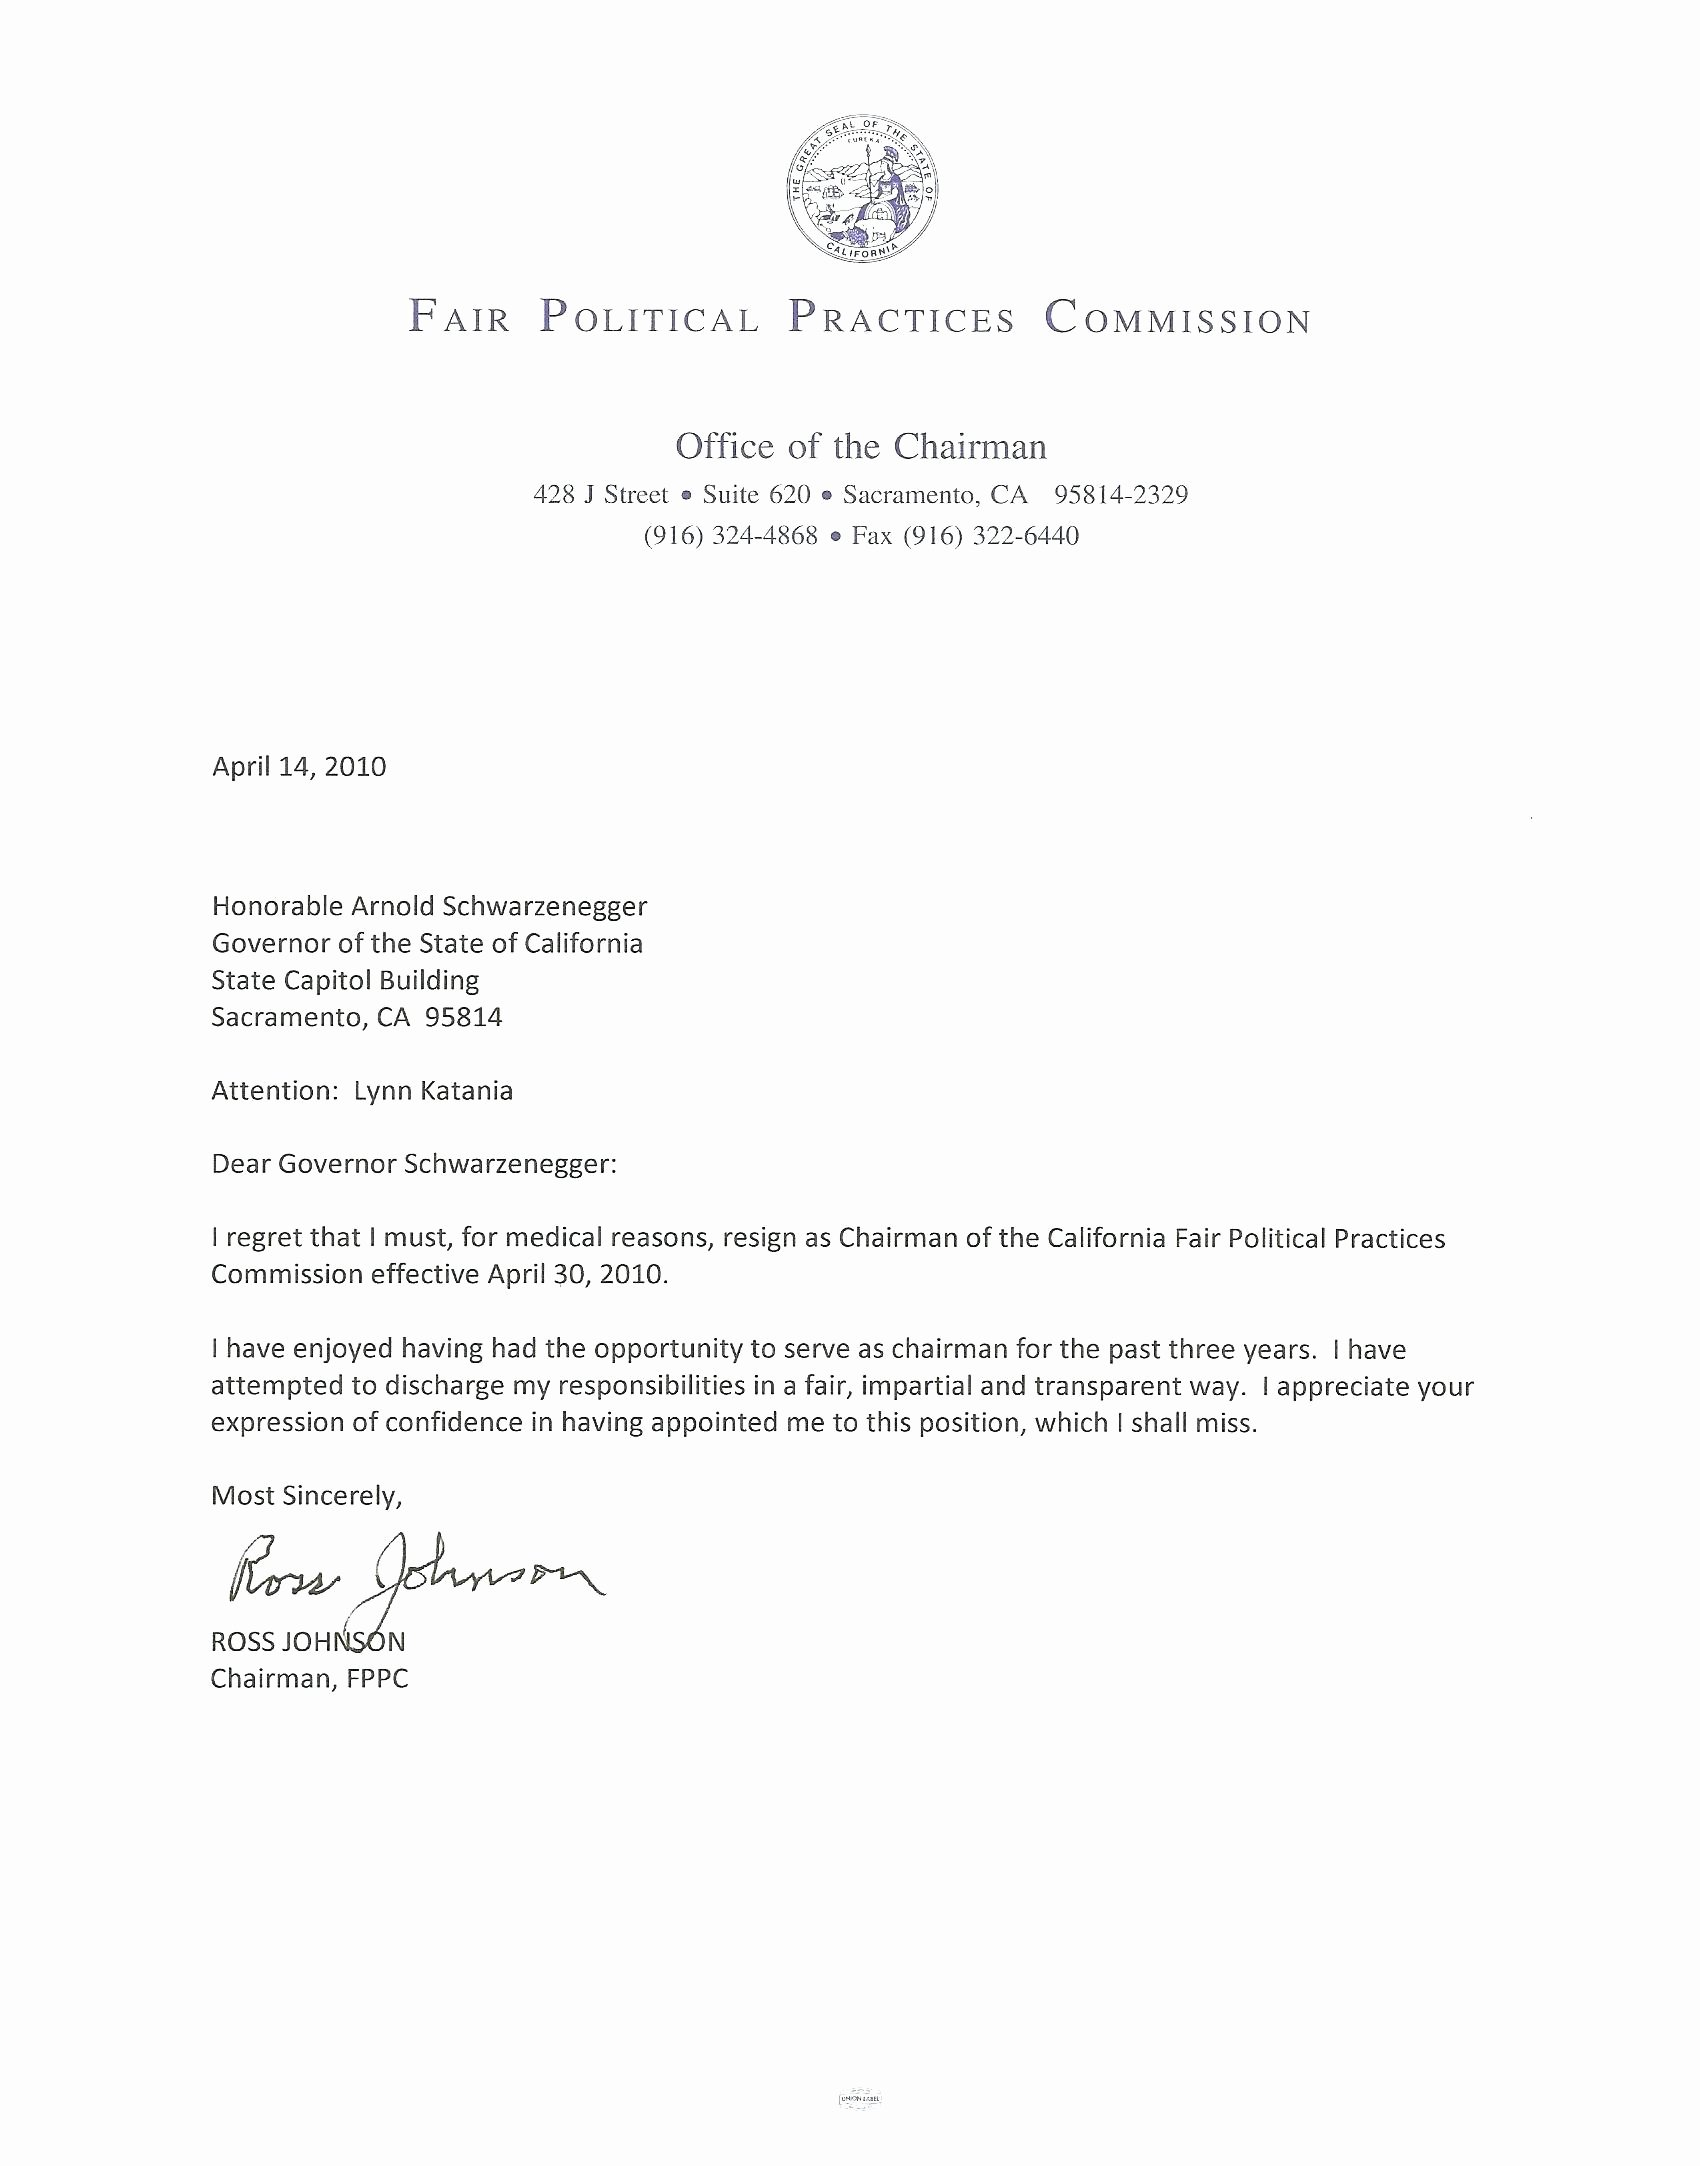 Contract Rescission Letter Beautiful Free Cover Letter A Rescind Job Fer Sample Retract